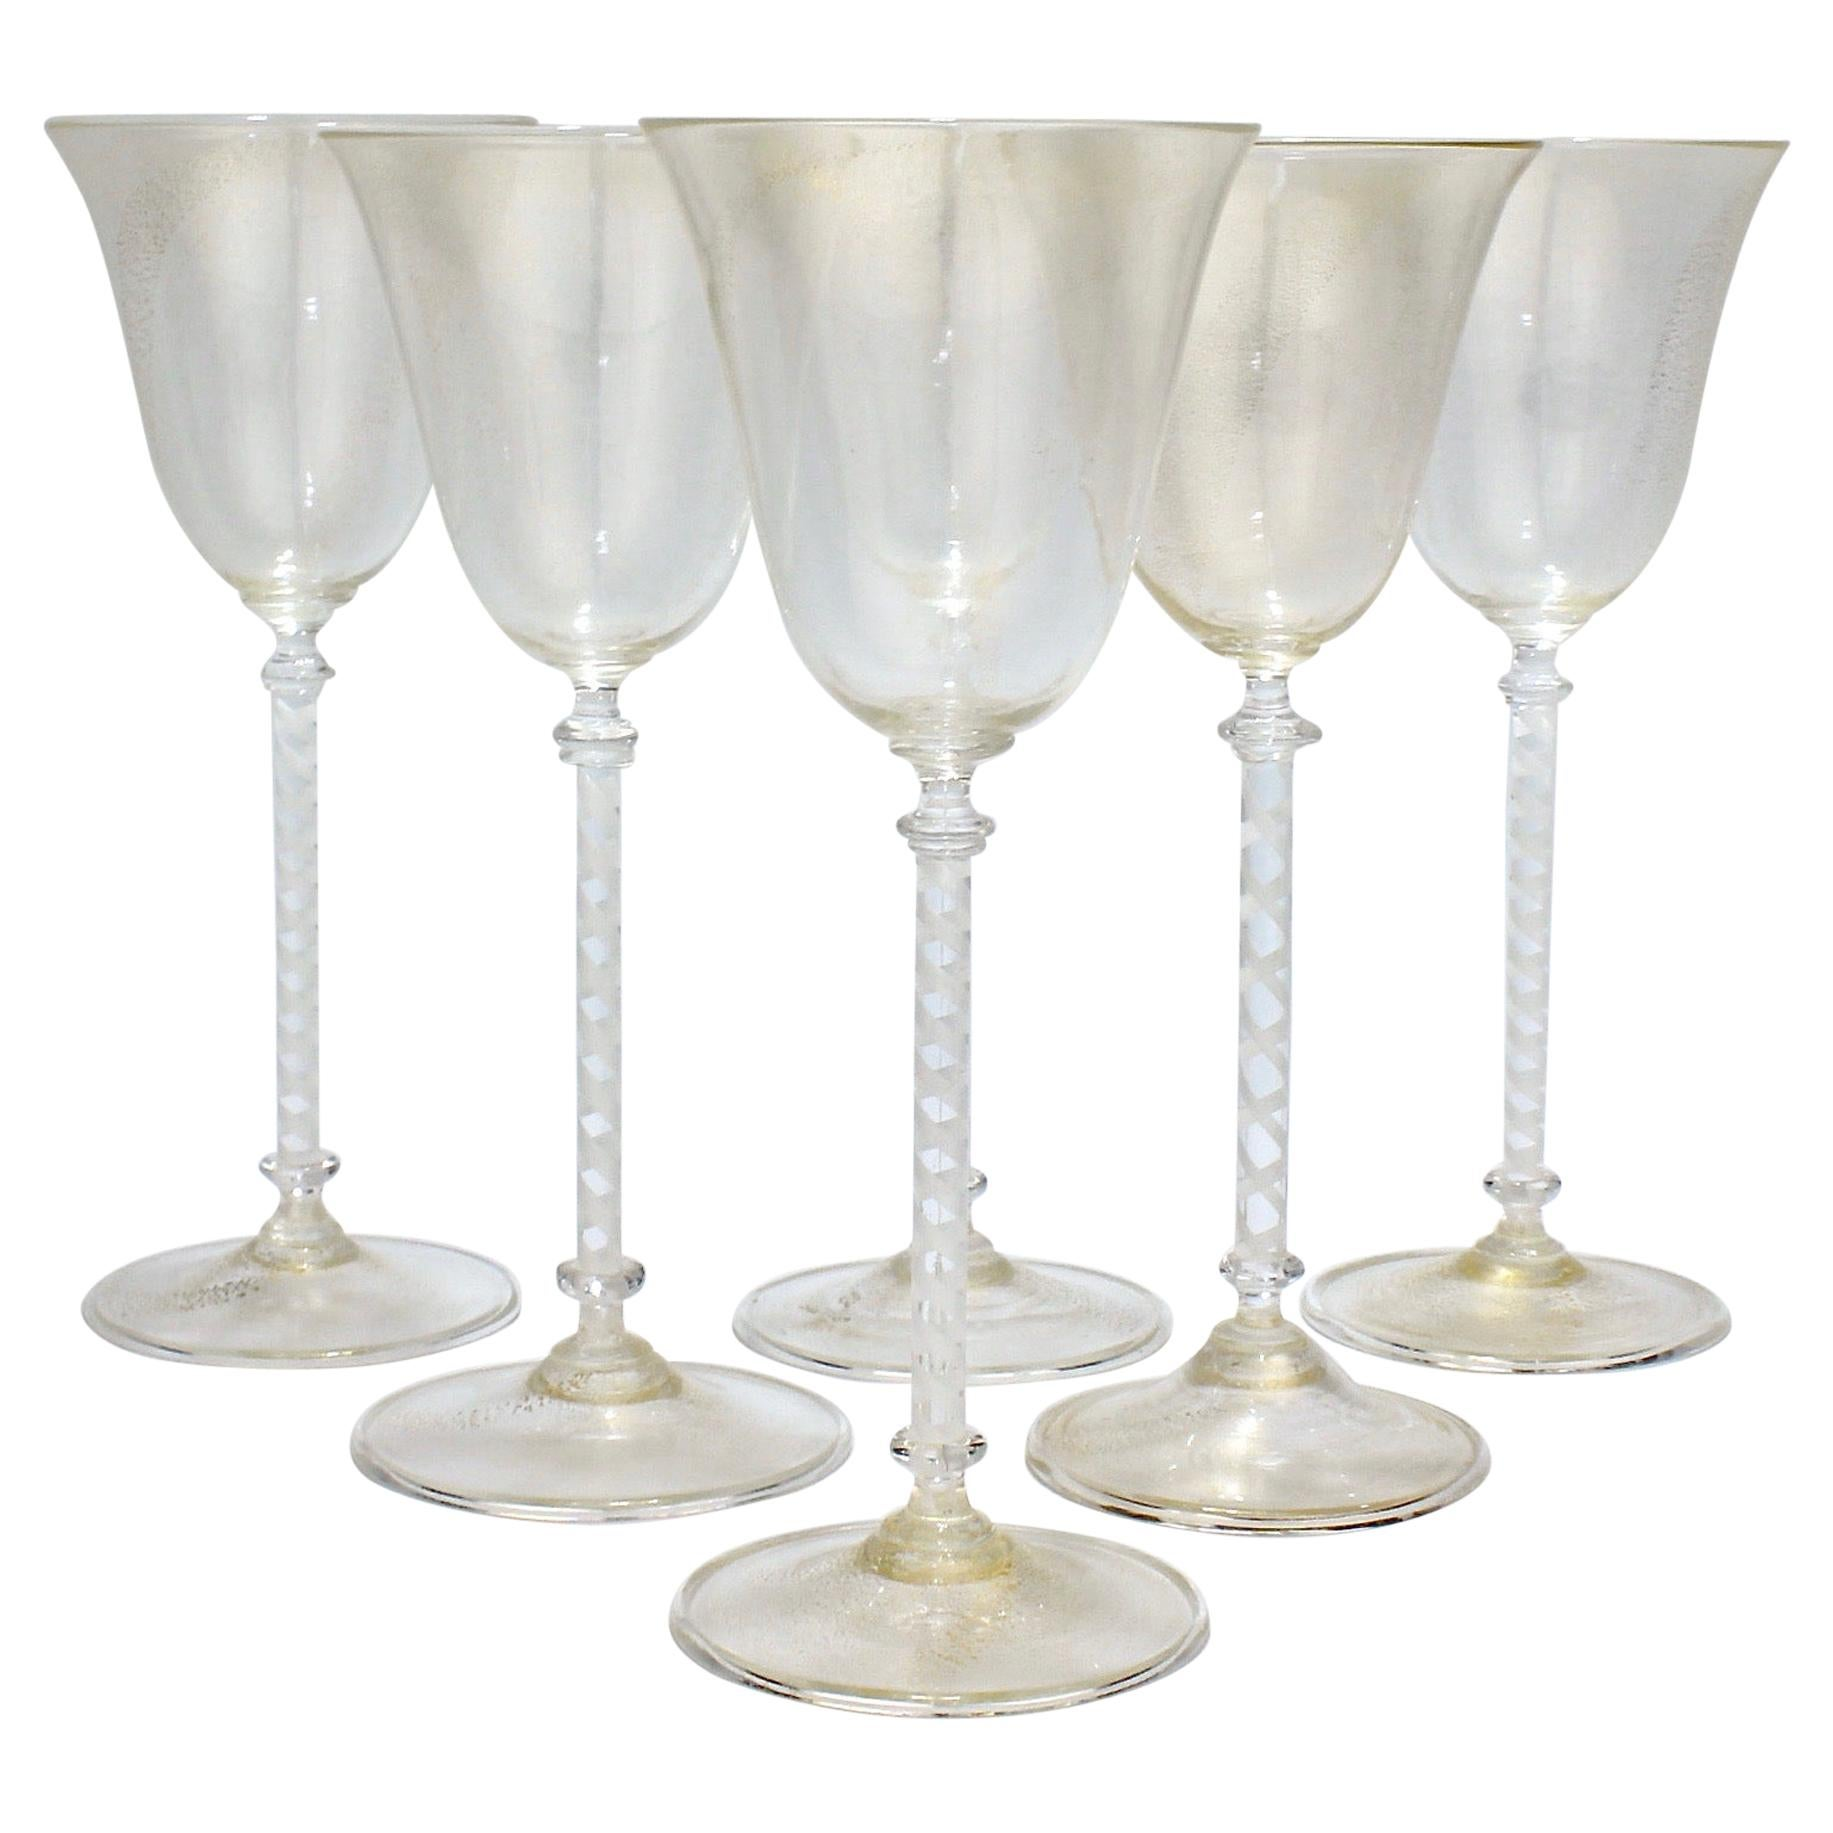 Set of 6 Vintage Venetian Wine Goblets with White Twist Stems & Gold Inclusions